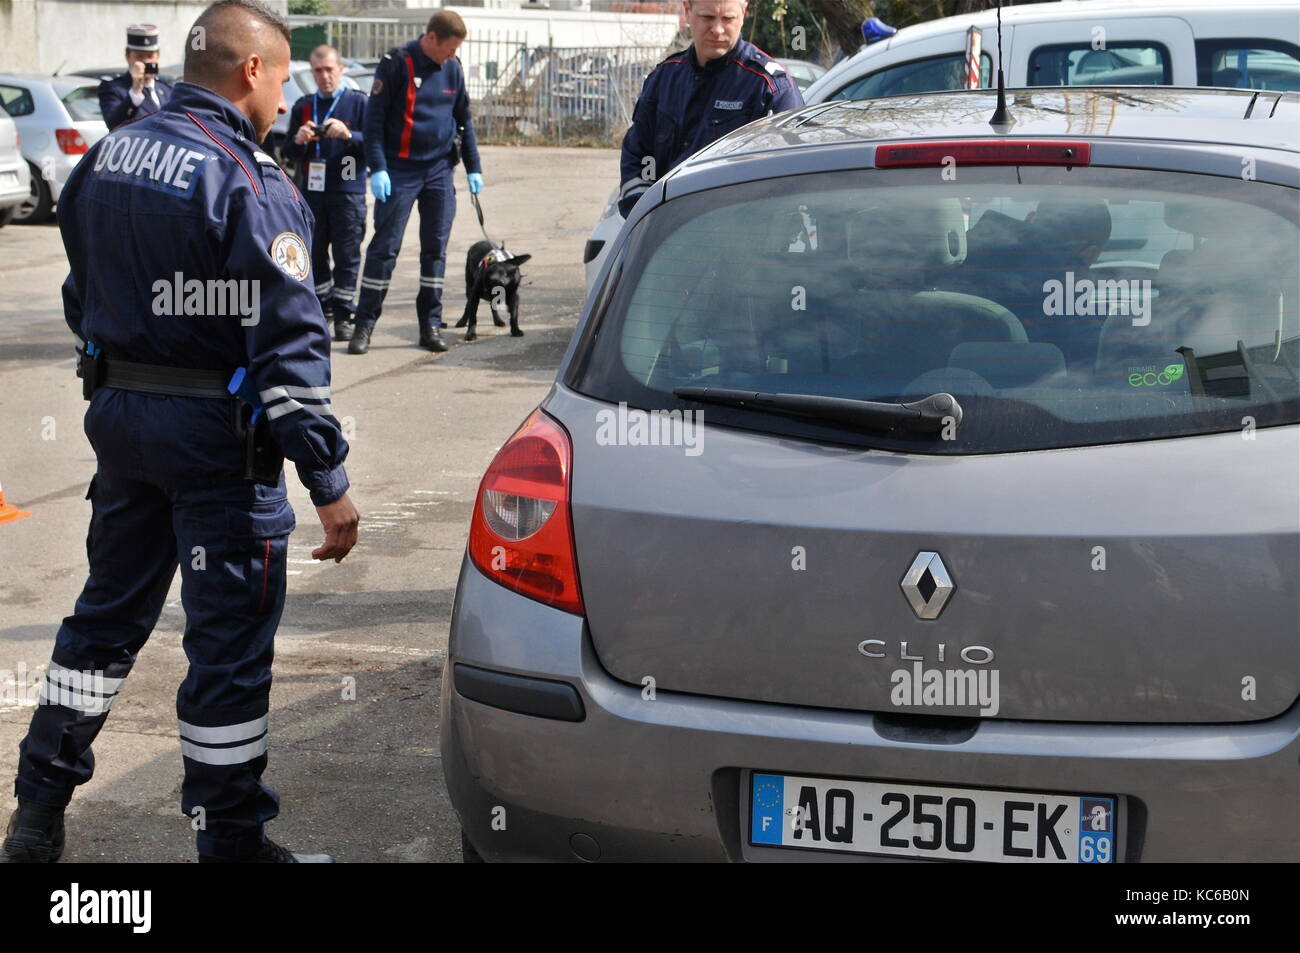 French customs hold a drill with 'cash money sniffer' dogs, Villeurbanne, France - Stock Image